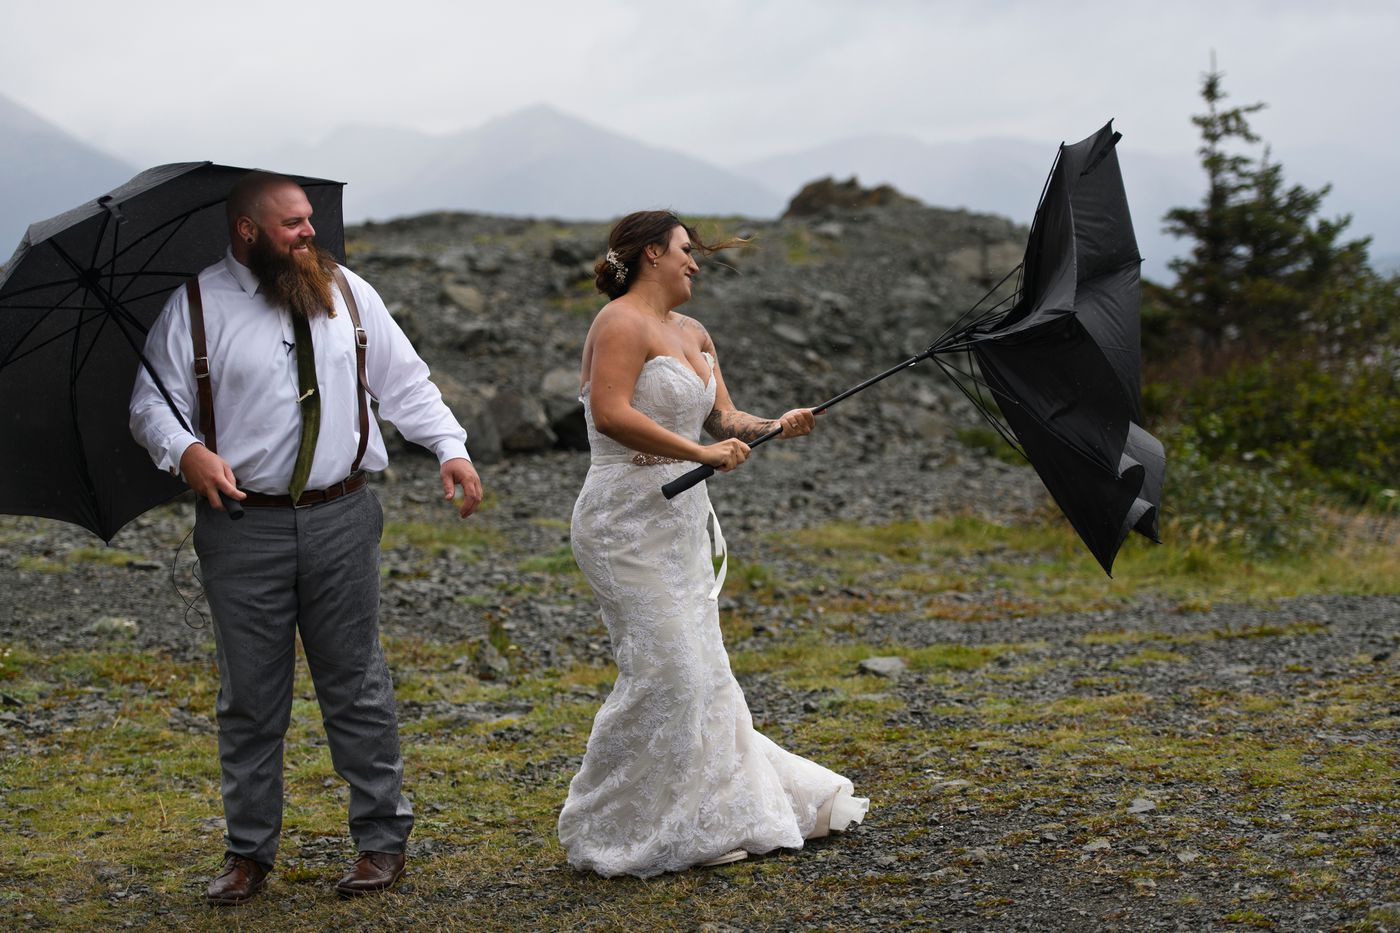 AUGUST 26. Robert Kurek and Kennedy Budd encounter wind while they stop for pictures and video at Beluga Point shortly before they planned to get married at Bird Point on Turnagain Arm. The couple, from Ottawa Lake, Michigan, had planned to marry in the Virgin Islands in spring, but changed their plans because of the pandemic. They decided to elope instead and get married six years to day since they first met. Though they dealt with rain and wind during some of their photo session, weather improved and some sun broke through before their ceremony. (Marc Lester / ADN)